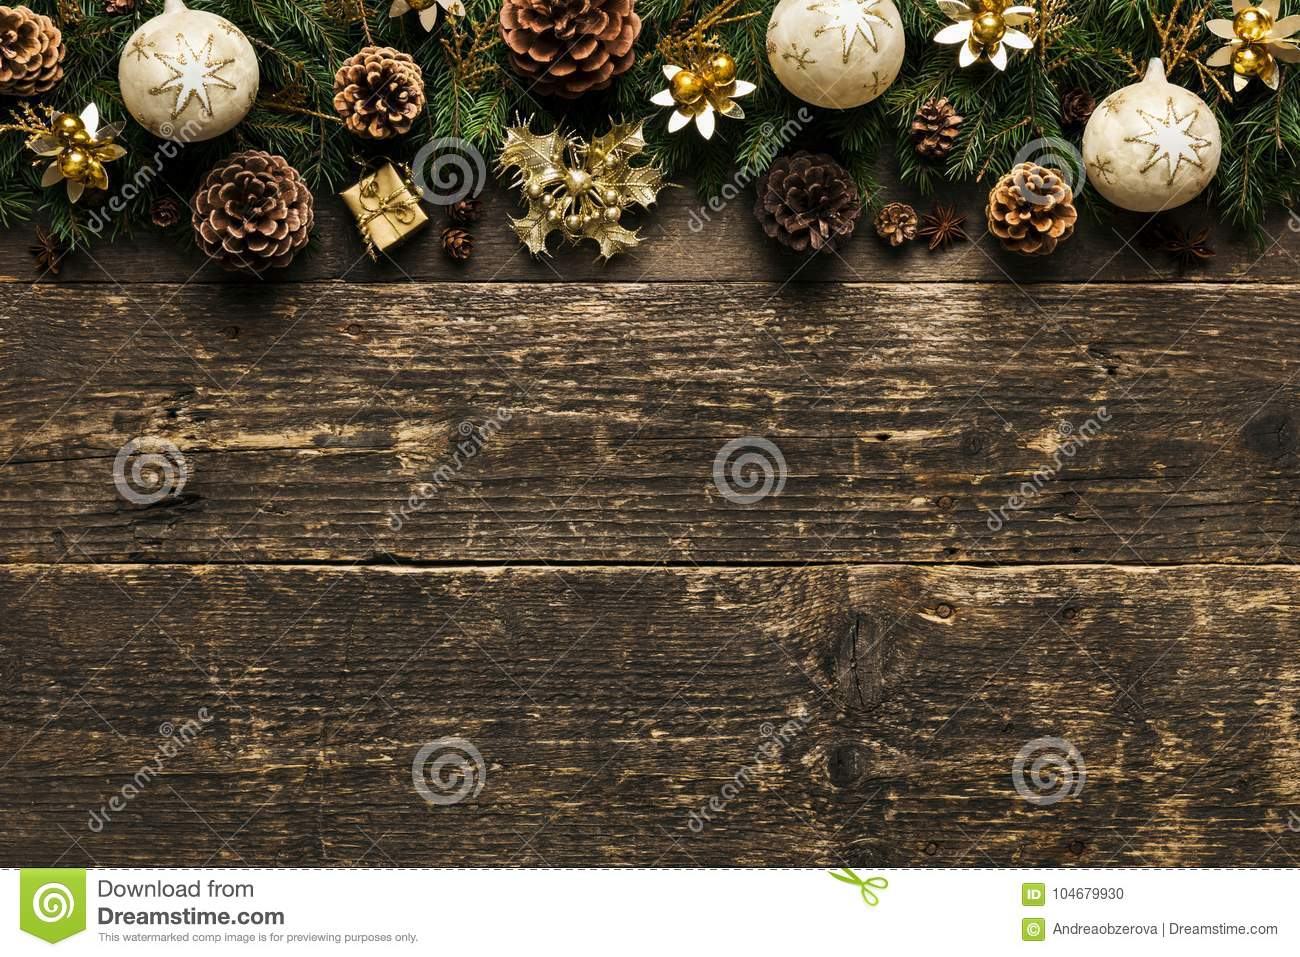 Christmas Background, Fir Tree Branches With Pine Cones, Xmas Baubles and Decorations On Wooden Background, Festive Concept